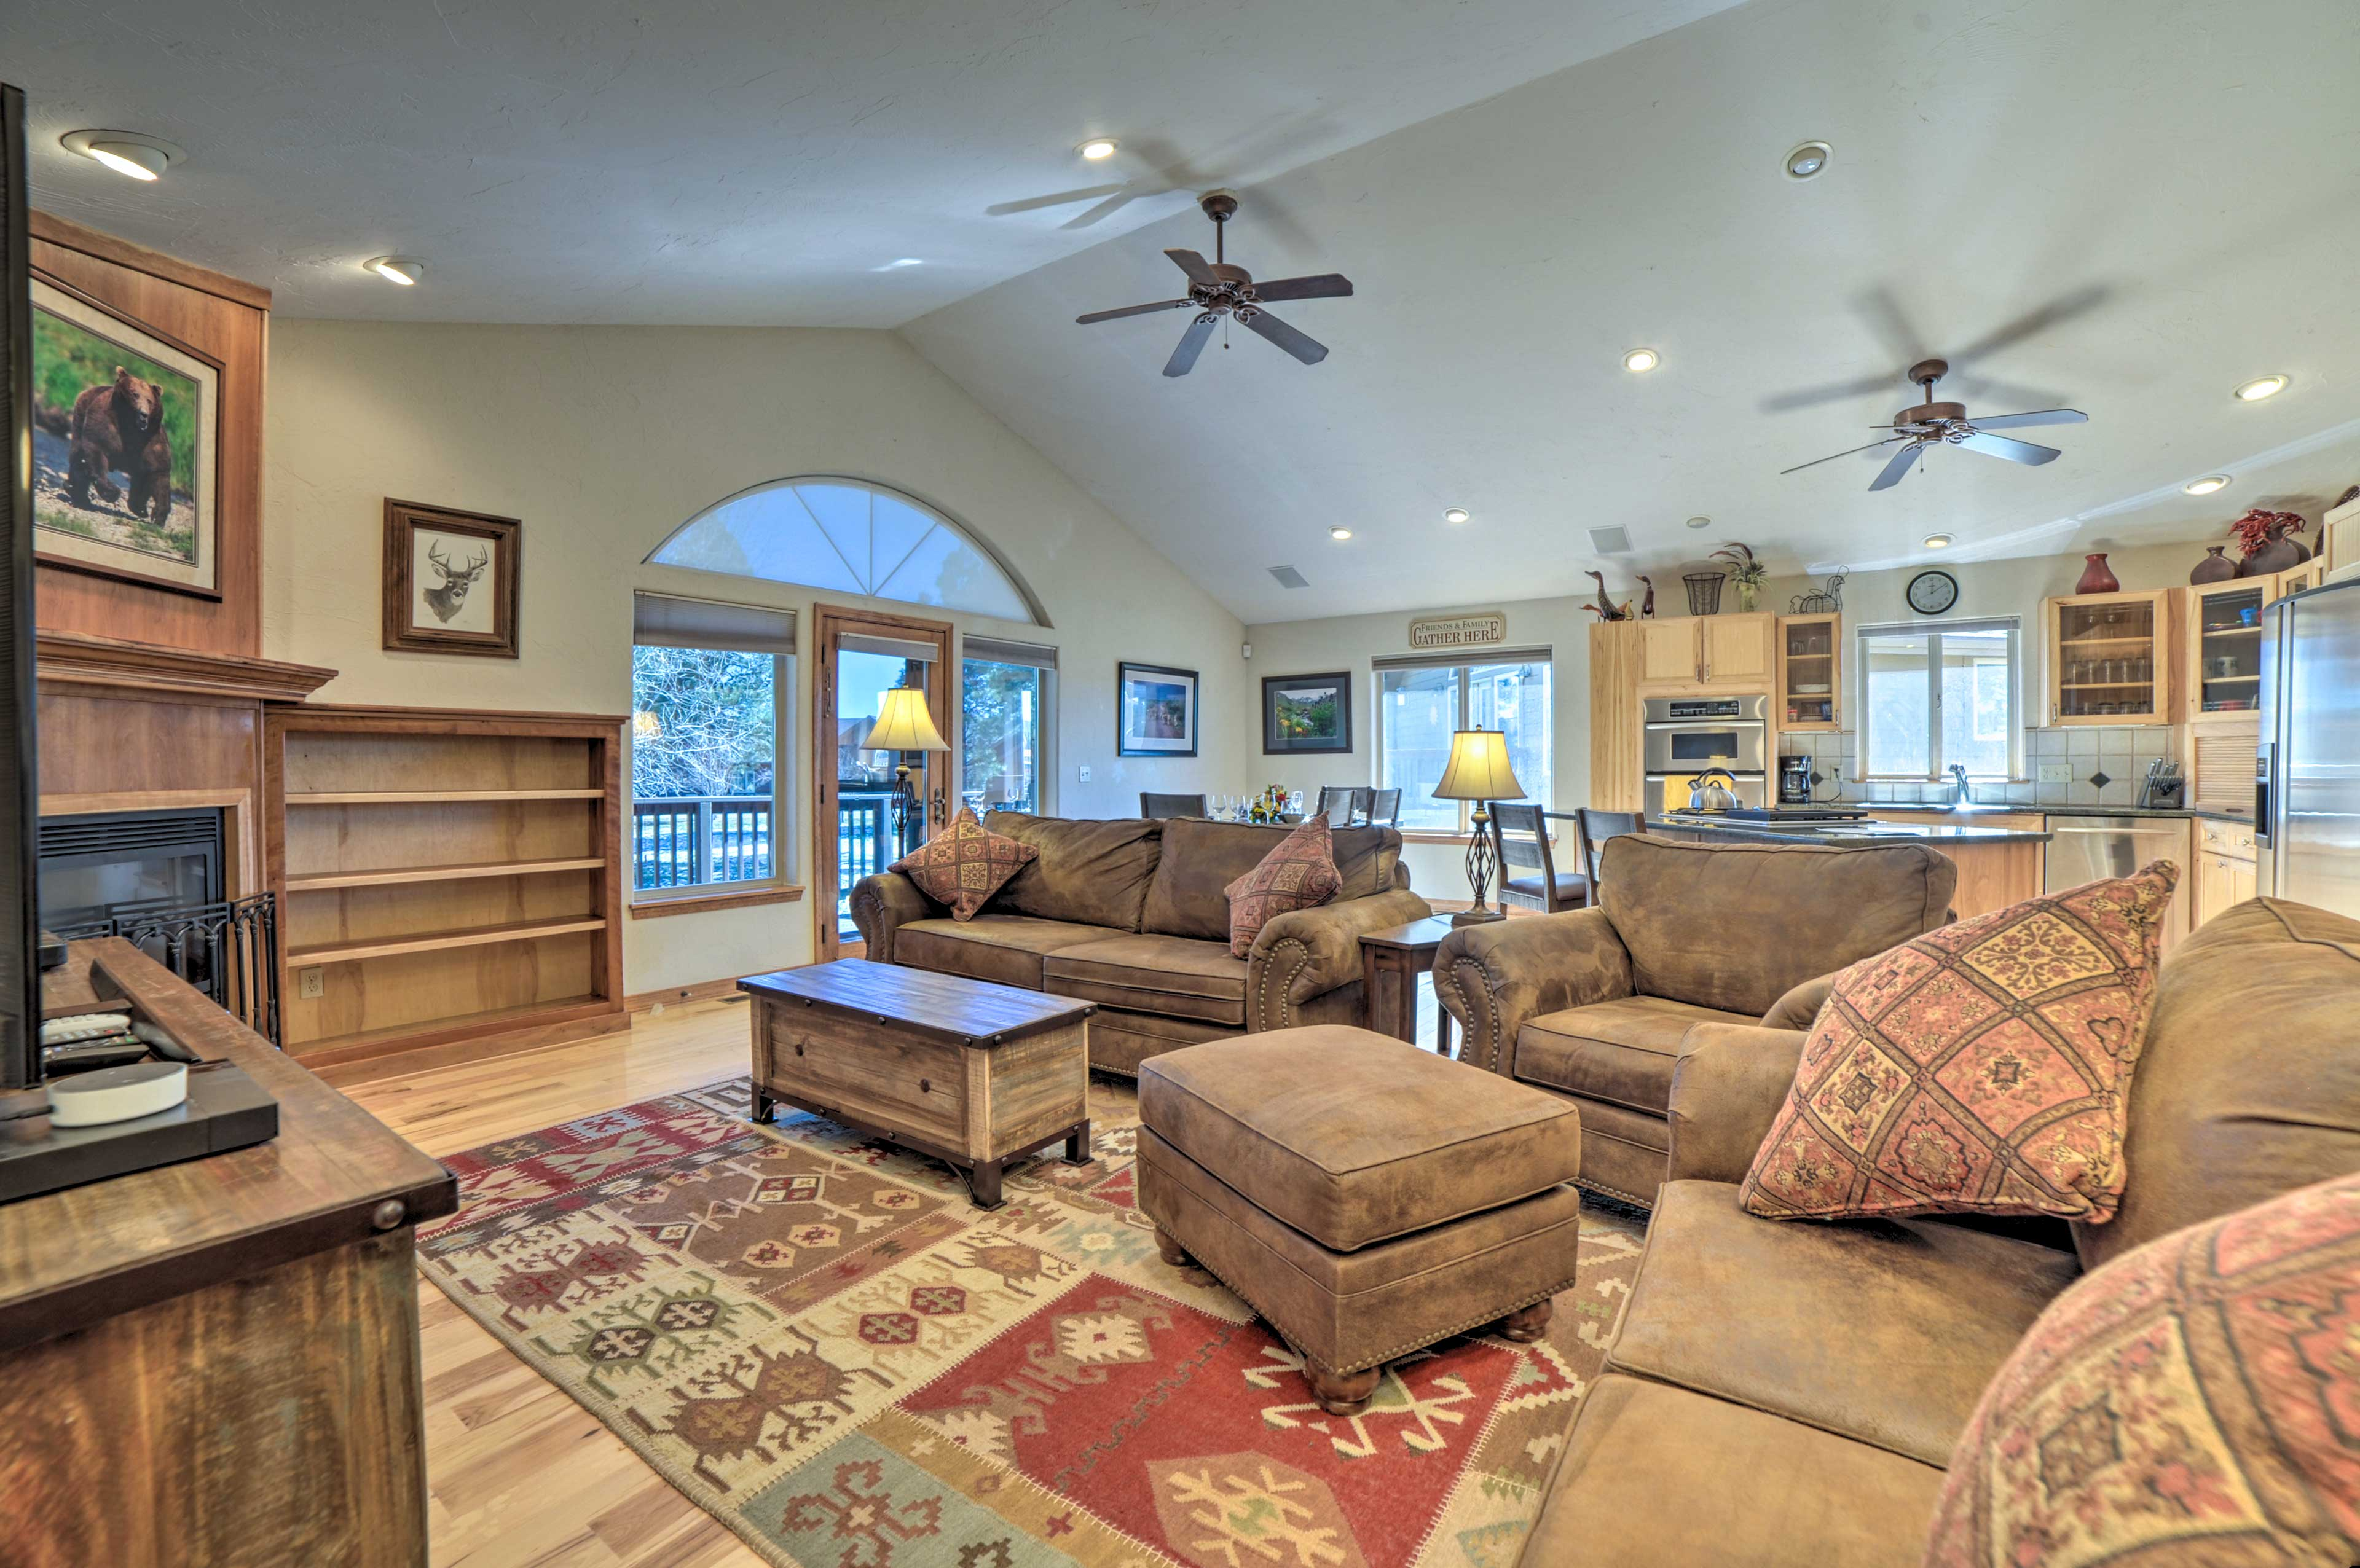 The living room is complete with plush furniture.